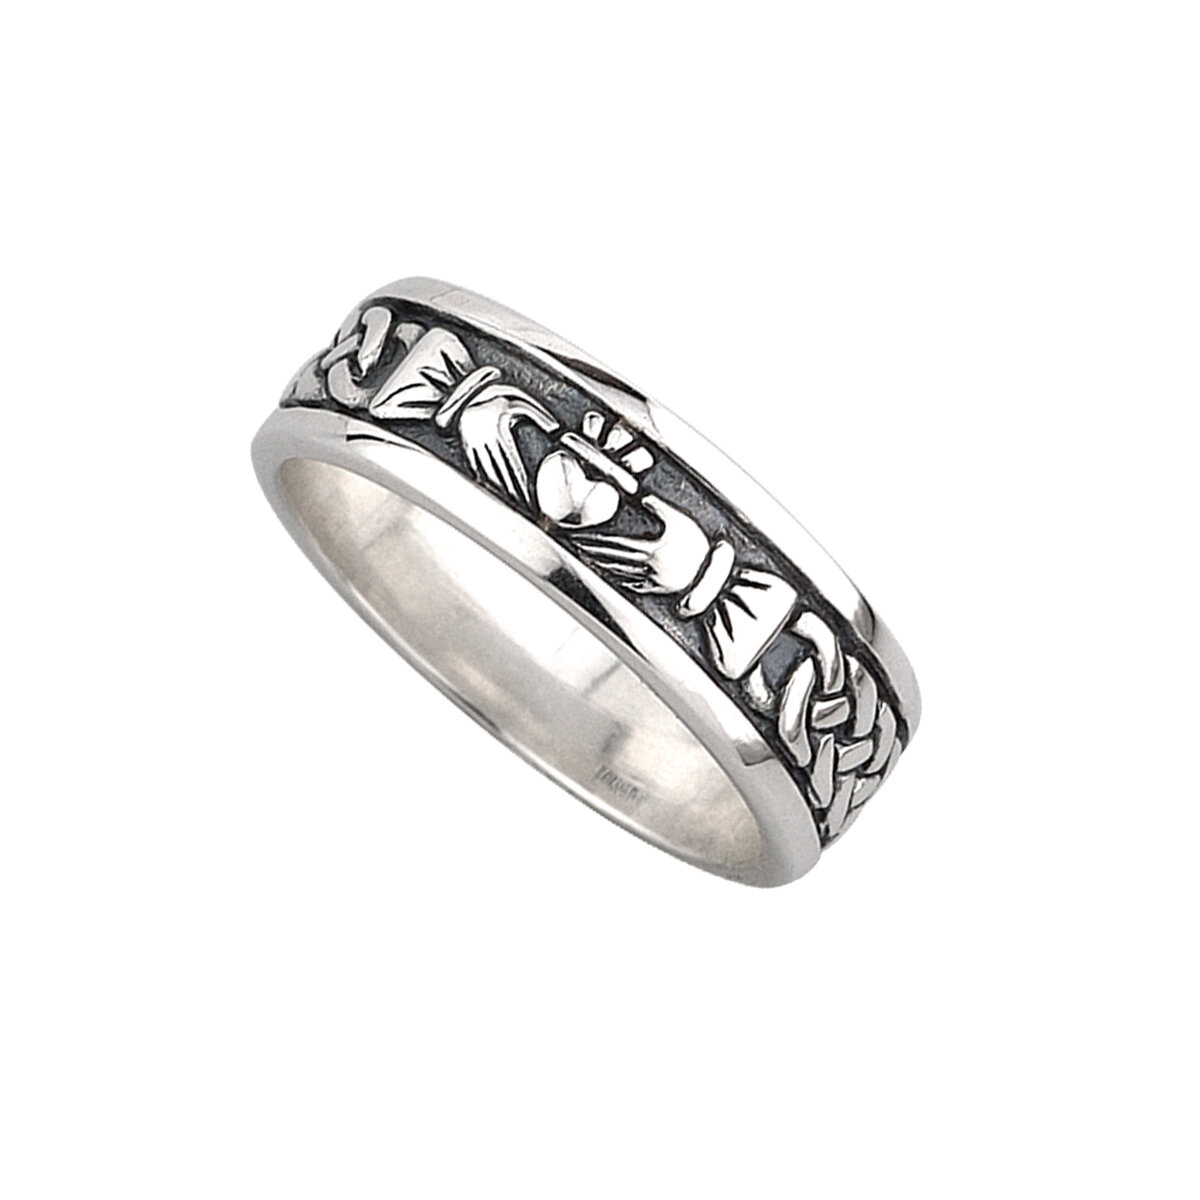 mens sterling silver oxidised claddagh ring s2828 from Solvar